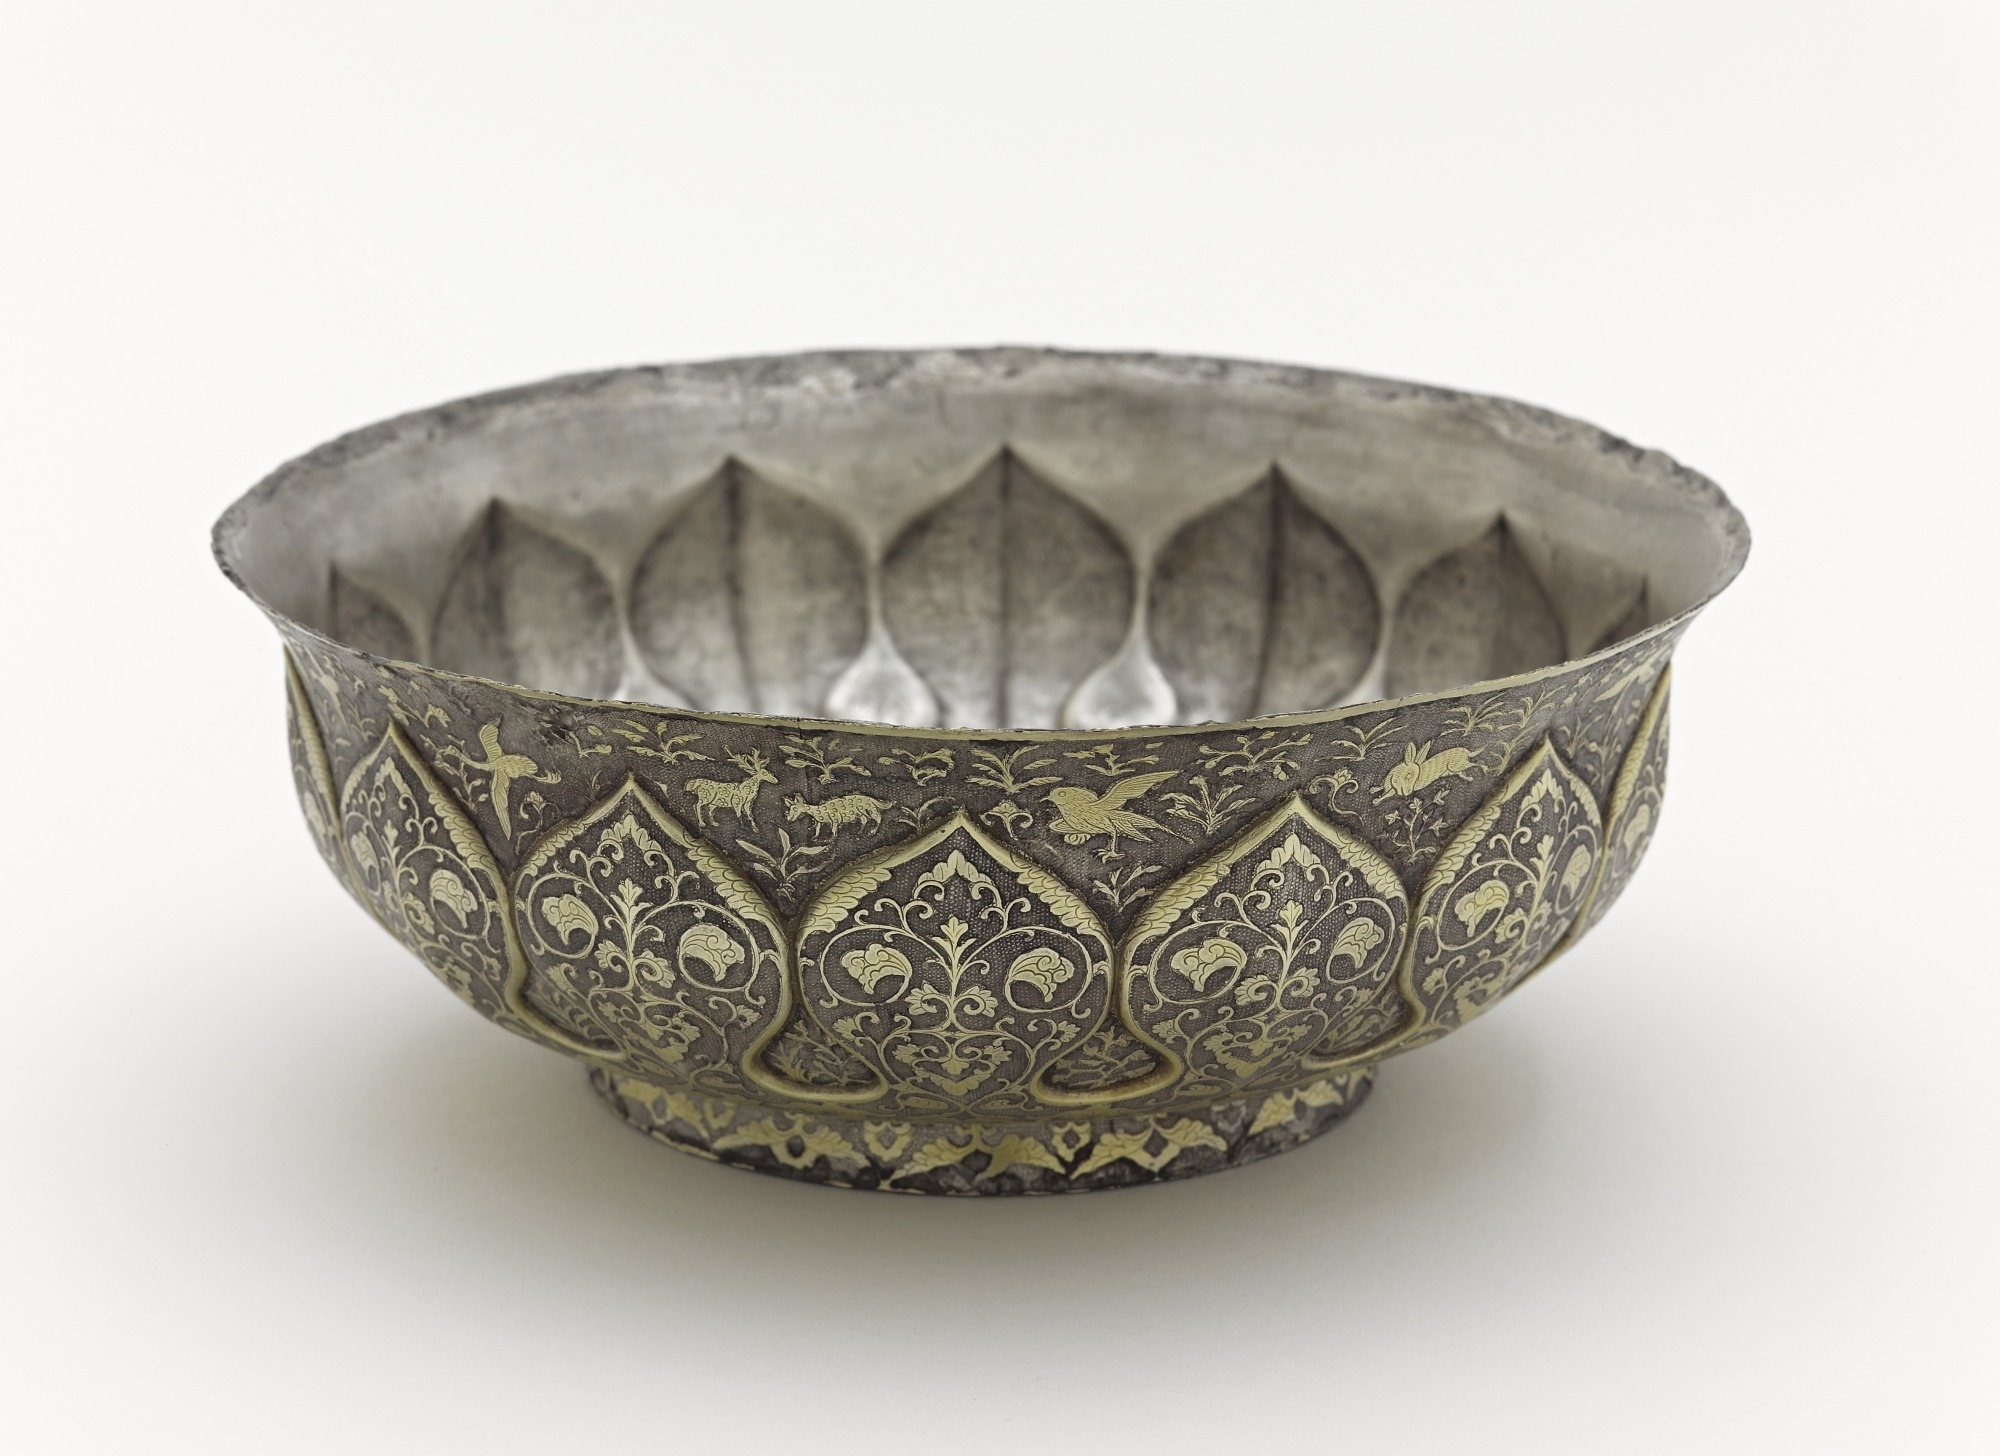 3/4 profile: Lobed bowl with lotus petals, birds, animals, and floral scrolls